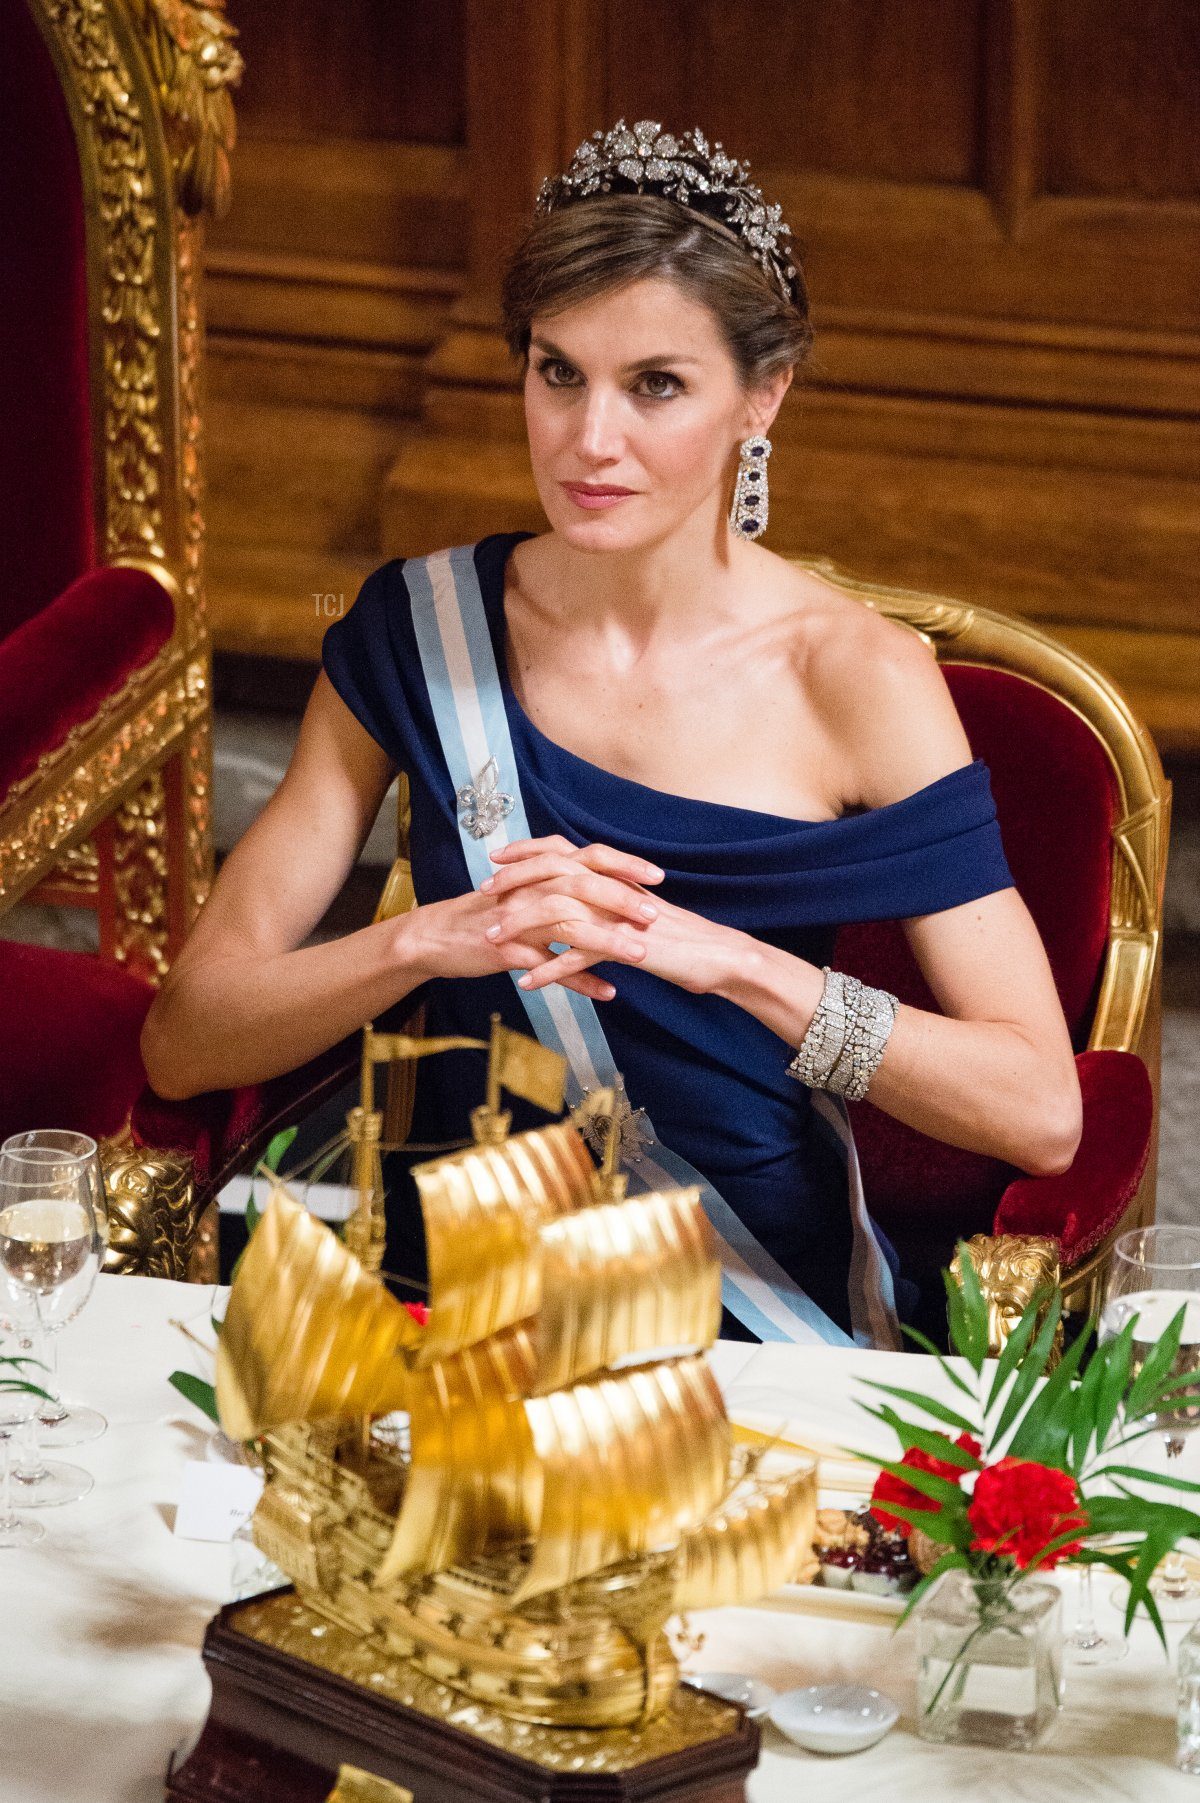 Queen Letizia of Spain attends a banquet at the Guildhall during a State visit by the King and Queen of Spain on July 13, 2017 in London, England